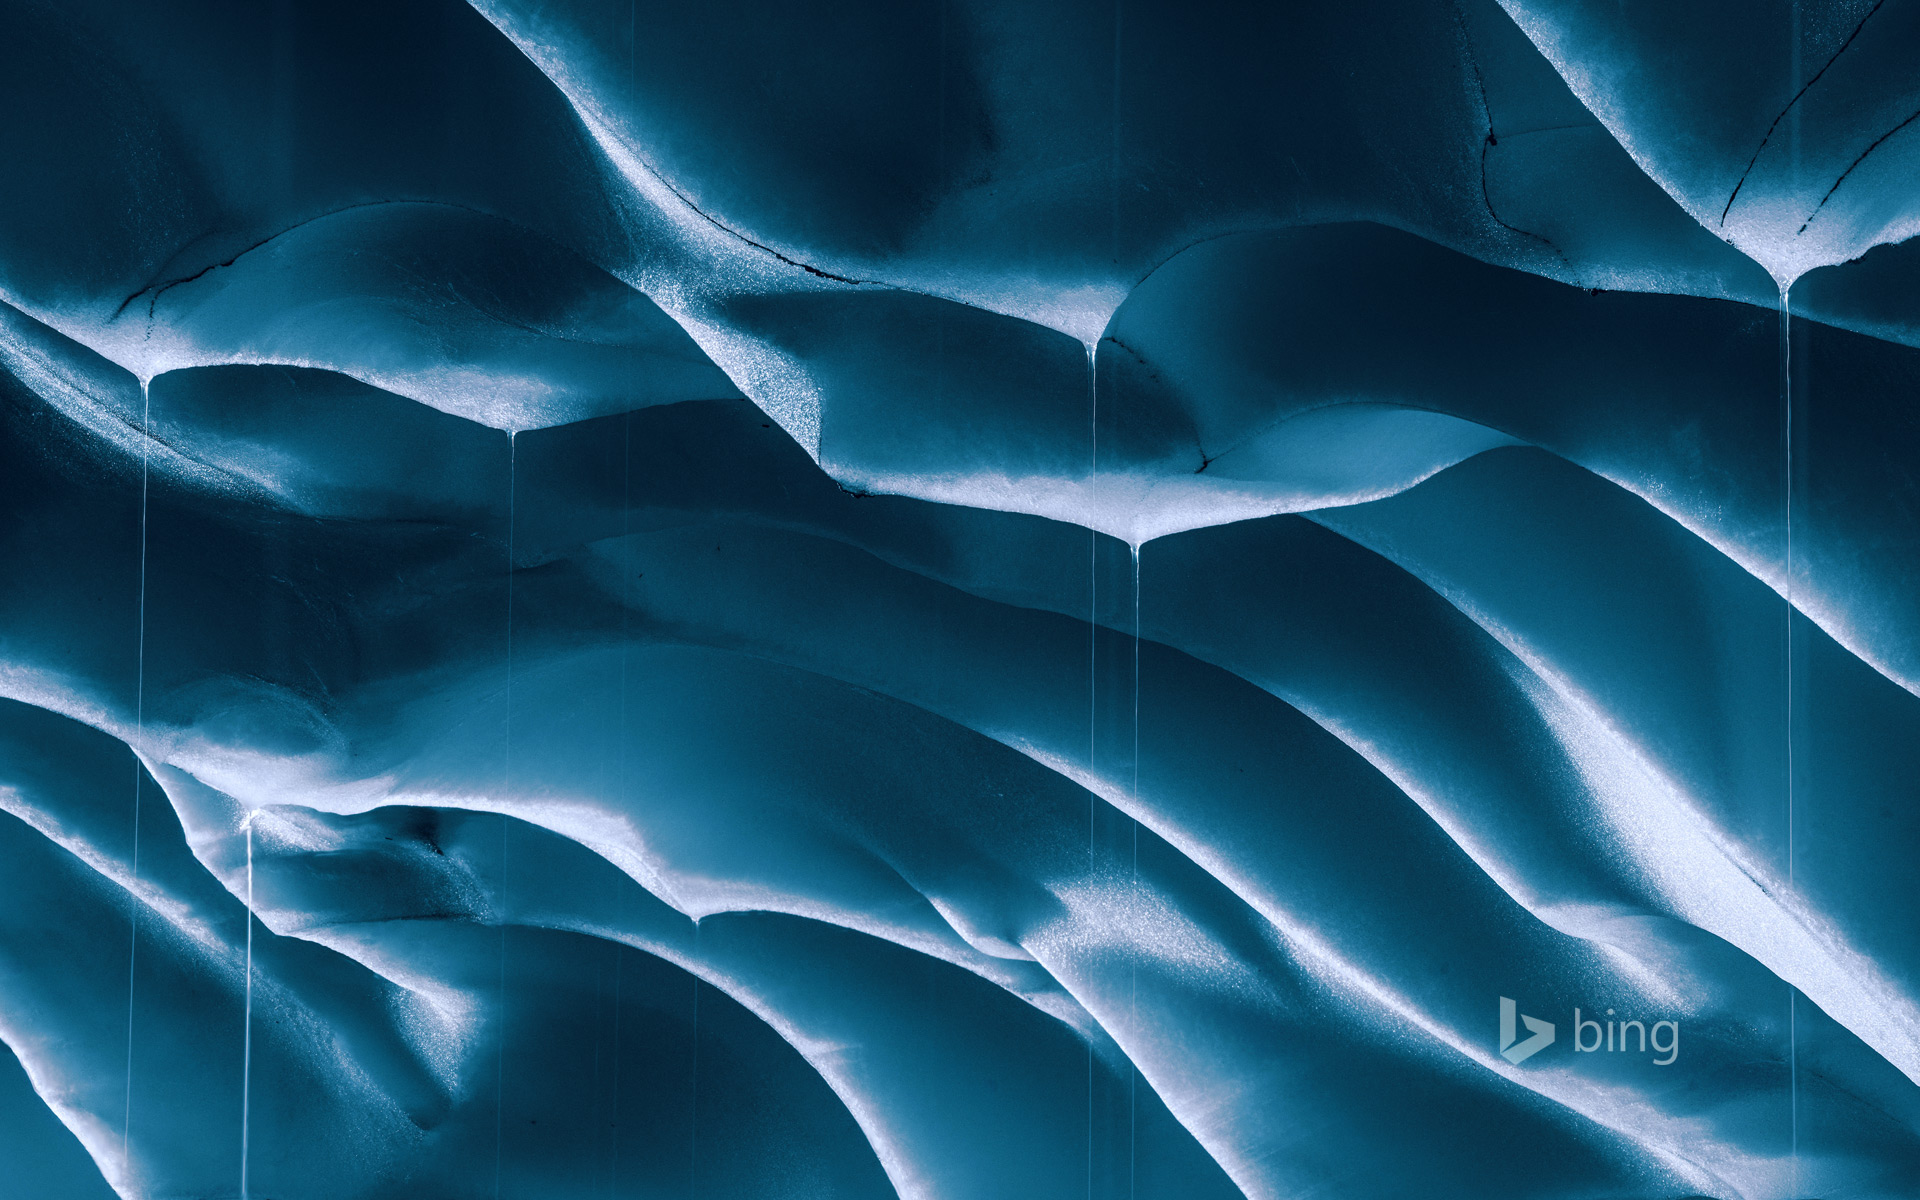 Melting ice walls of a glacial cave, Mount Rainier, Washington